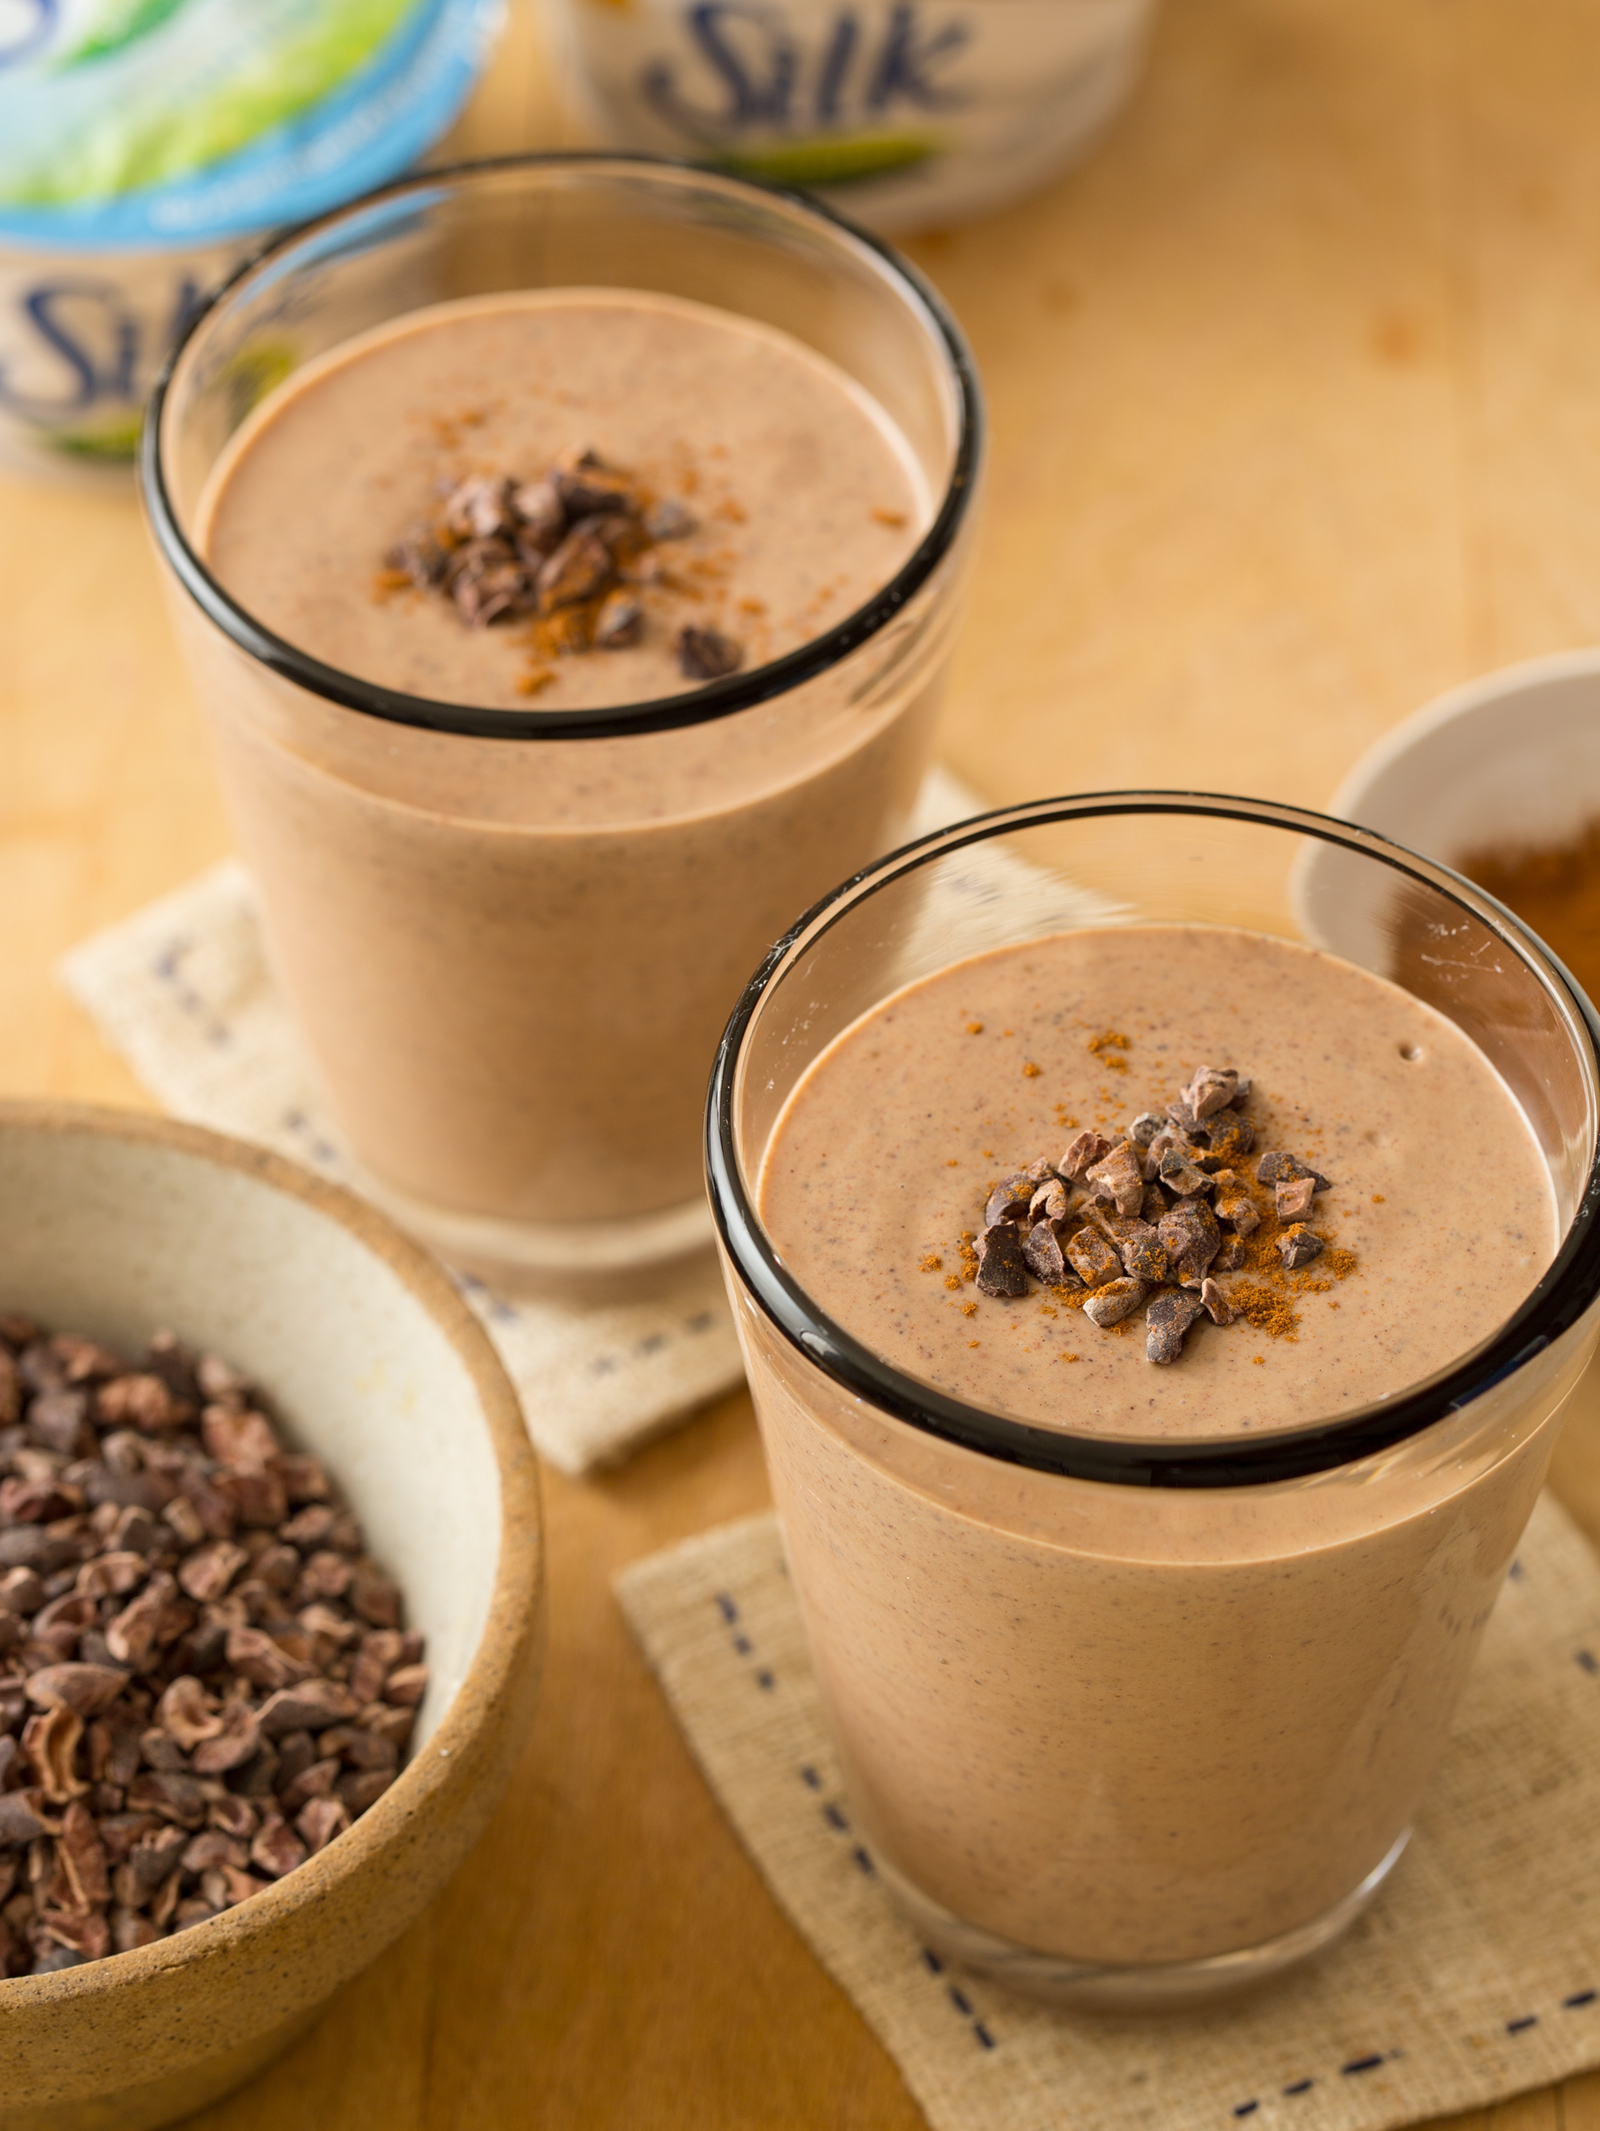 Chocolate Peanut Butter and Cinnamon Smoothie | Spoon Fork Bacon